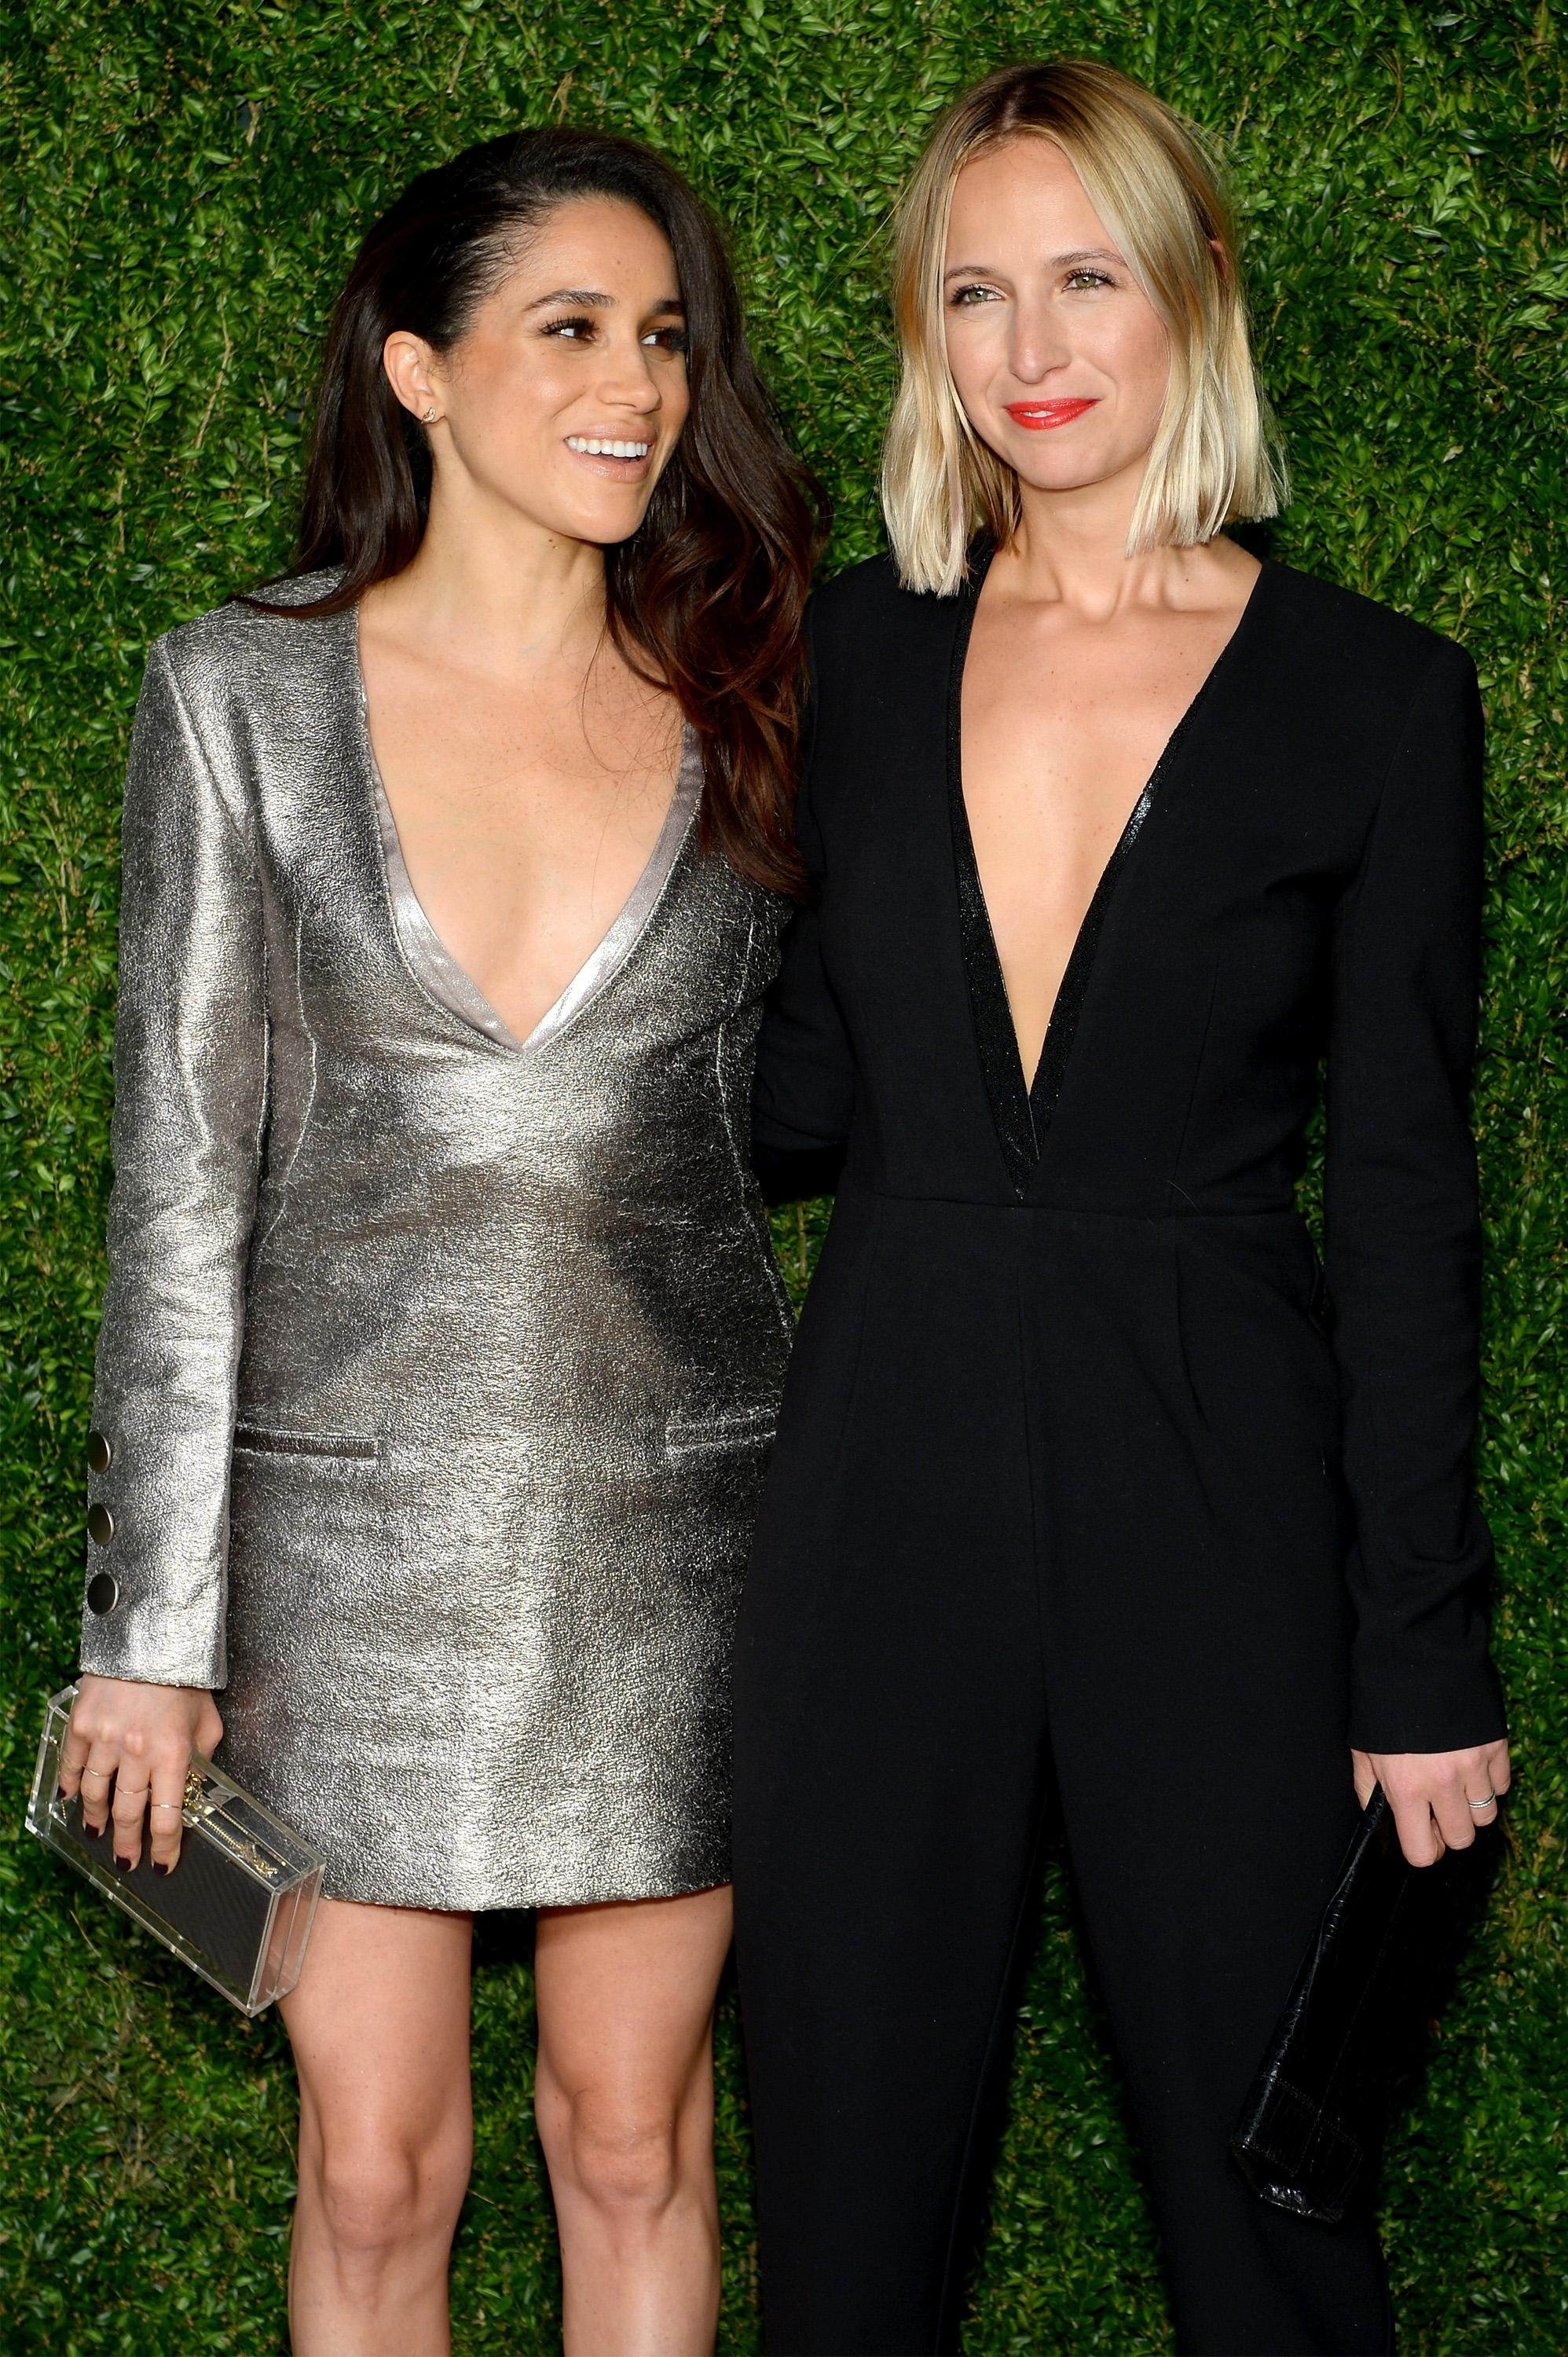 Nonoo and Markle on the red carpet together.